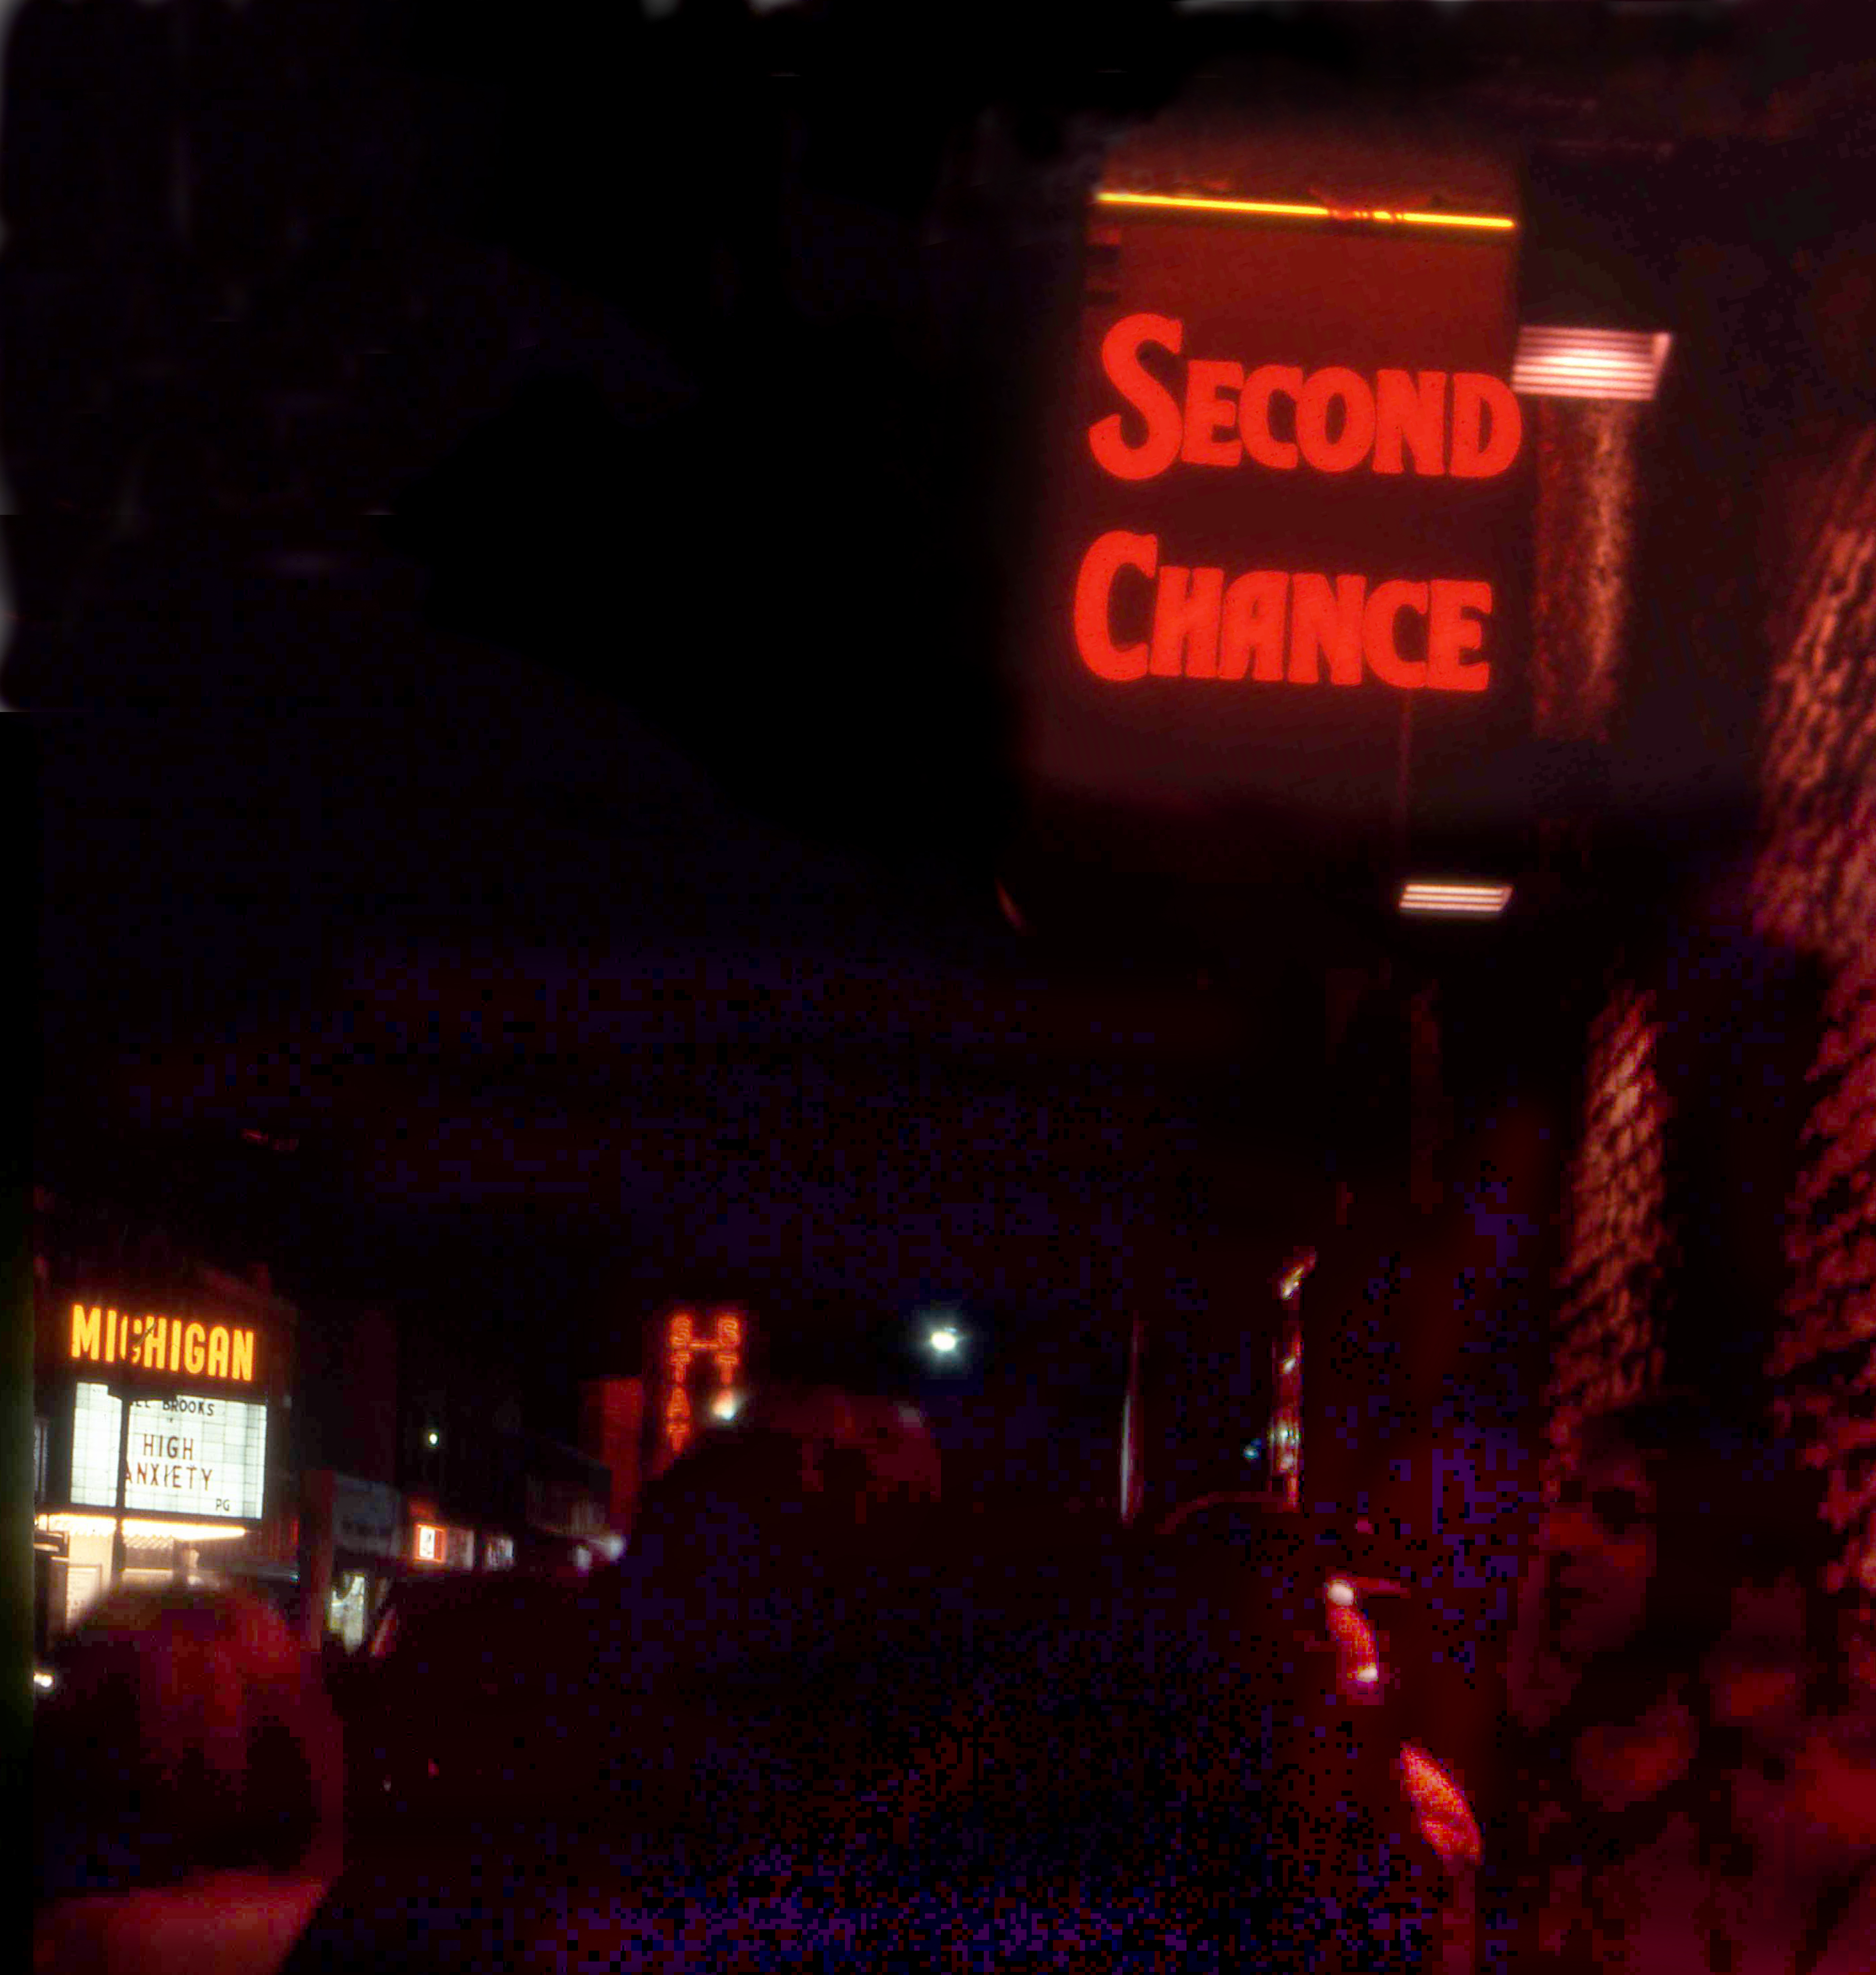 Second Chance, 1978 image